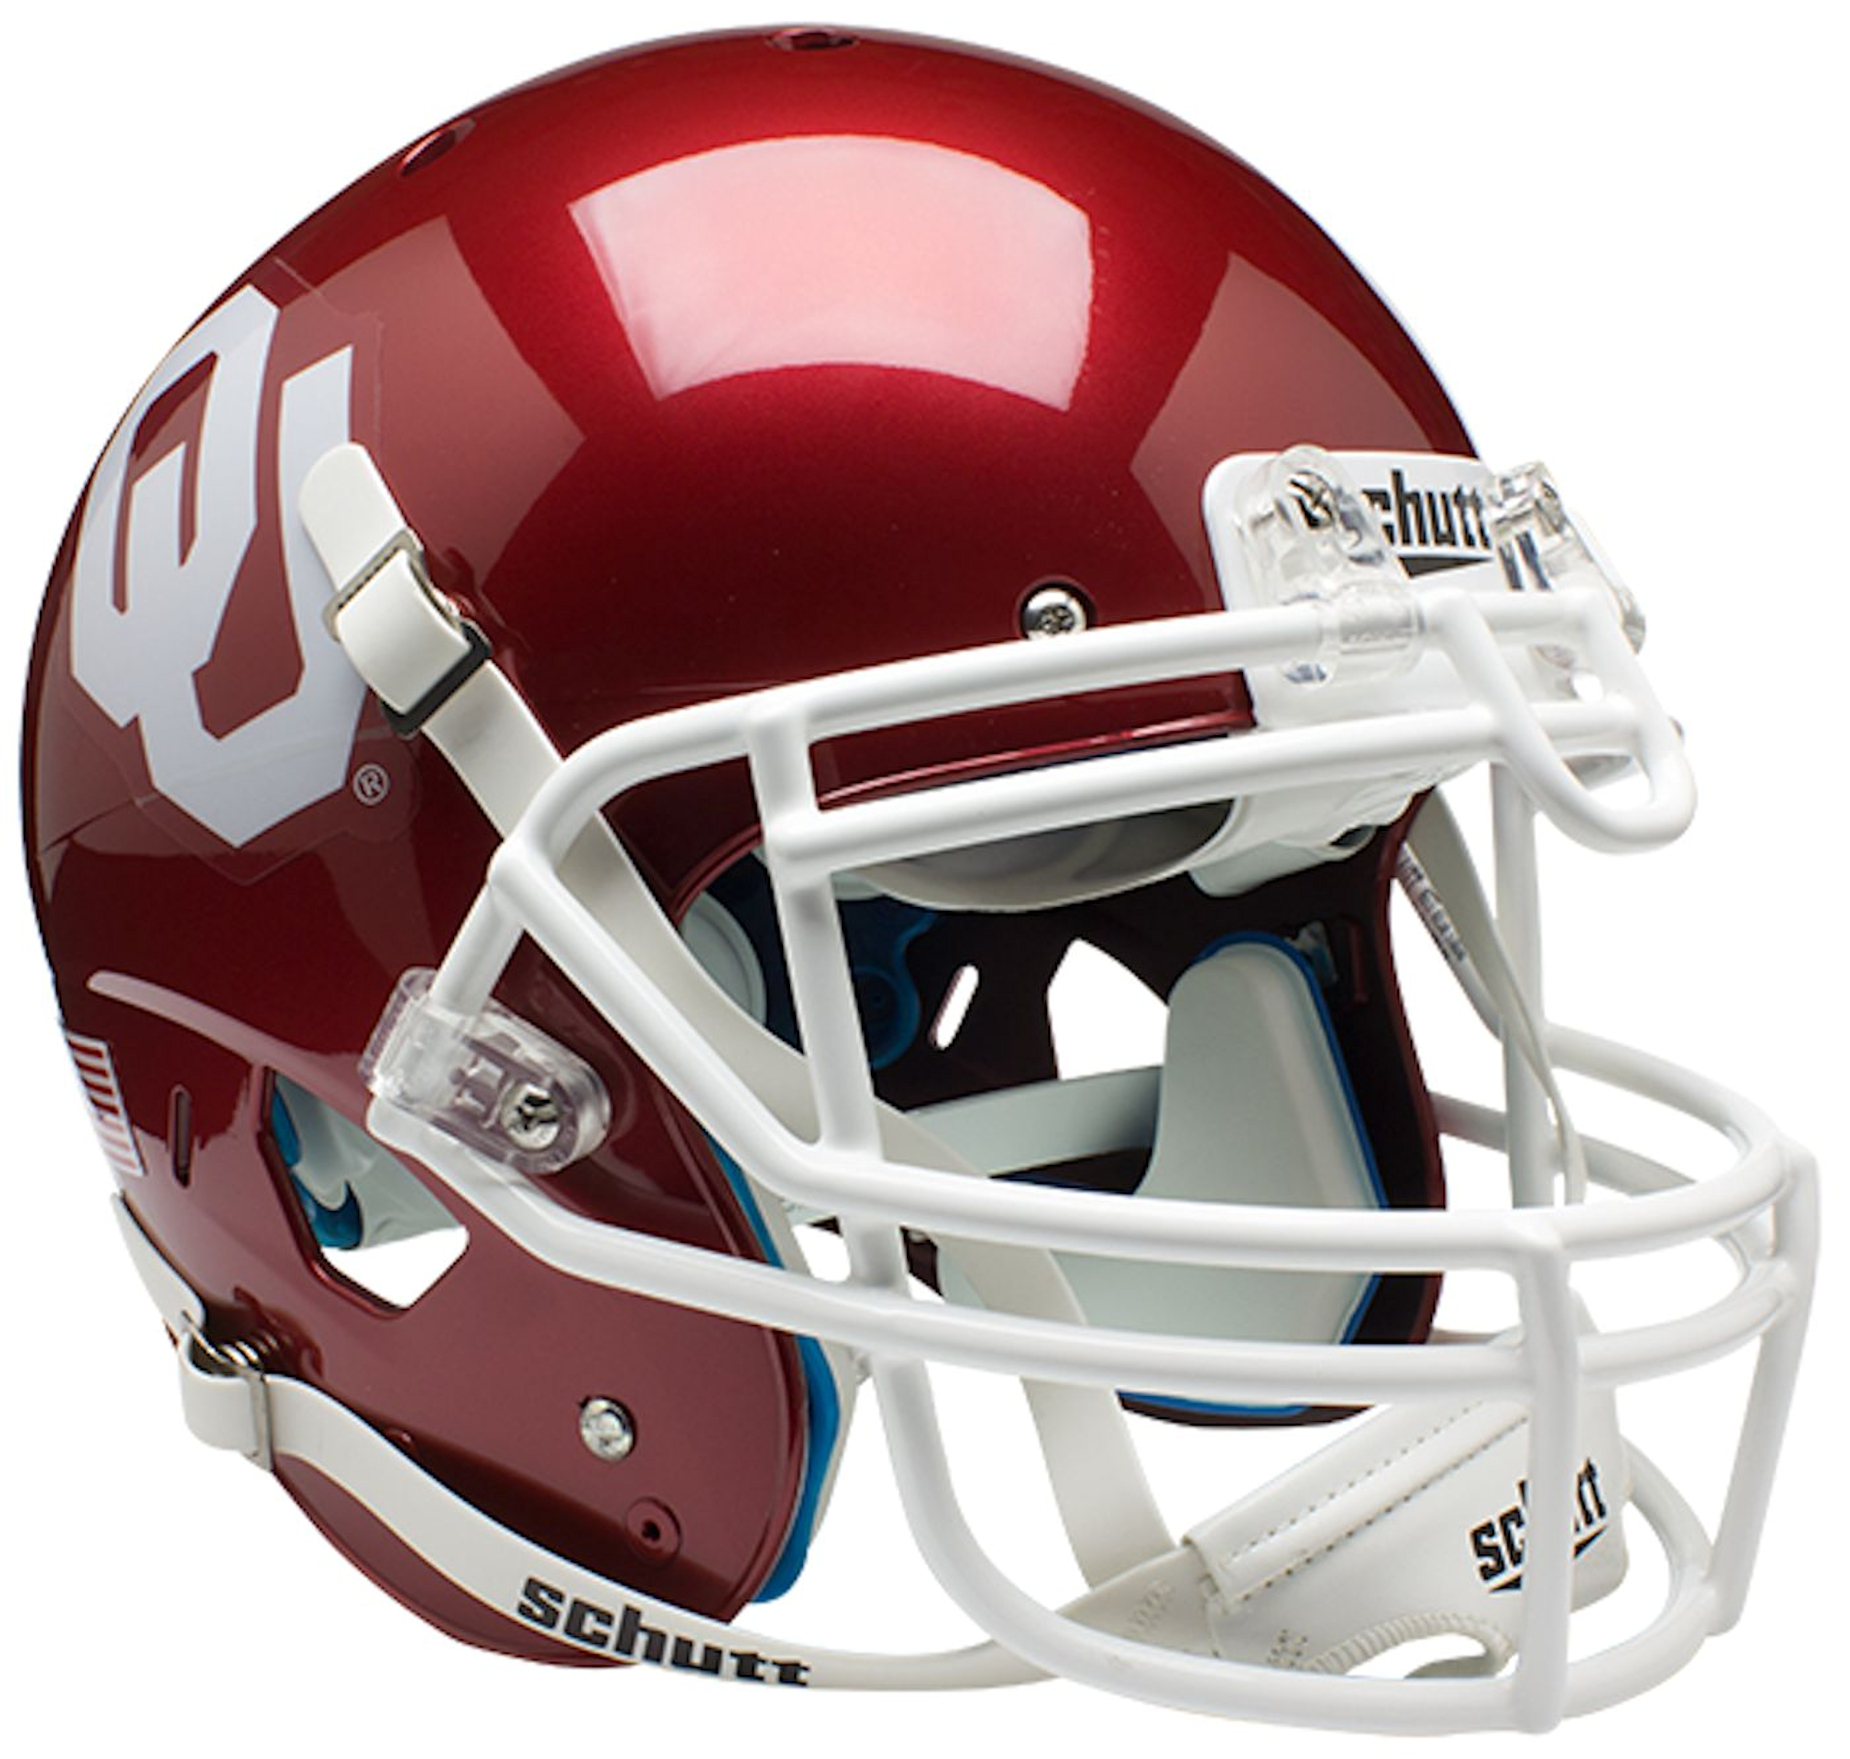 Oklahoma Sooners Authentic College XP Football Helmet Schutt